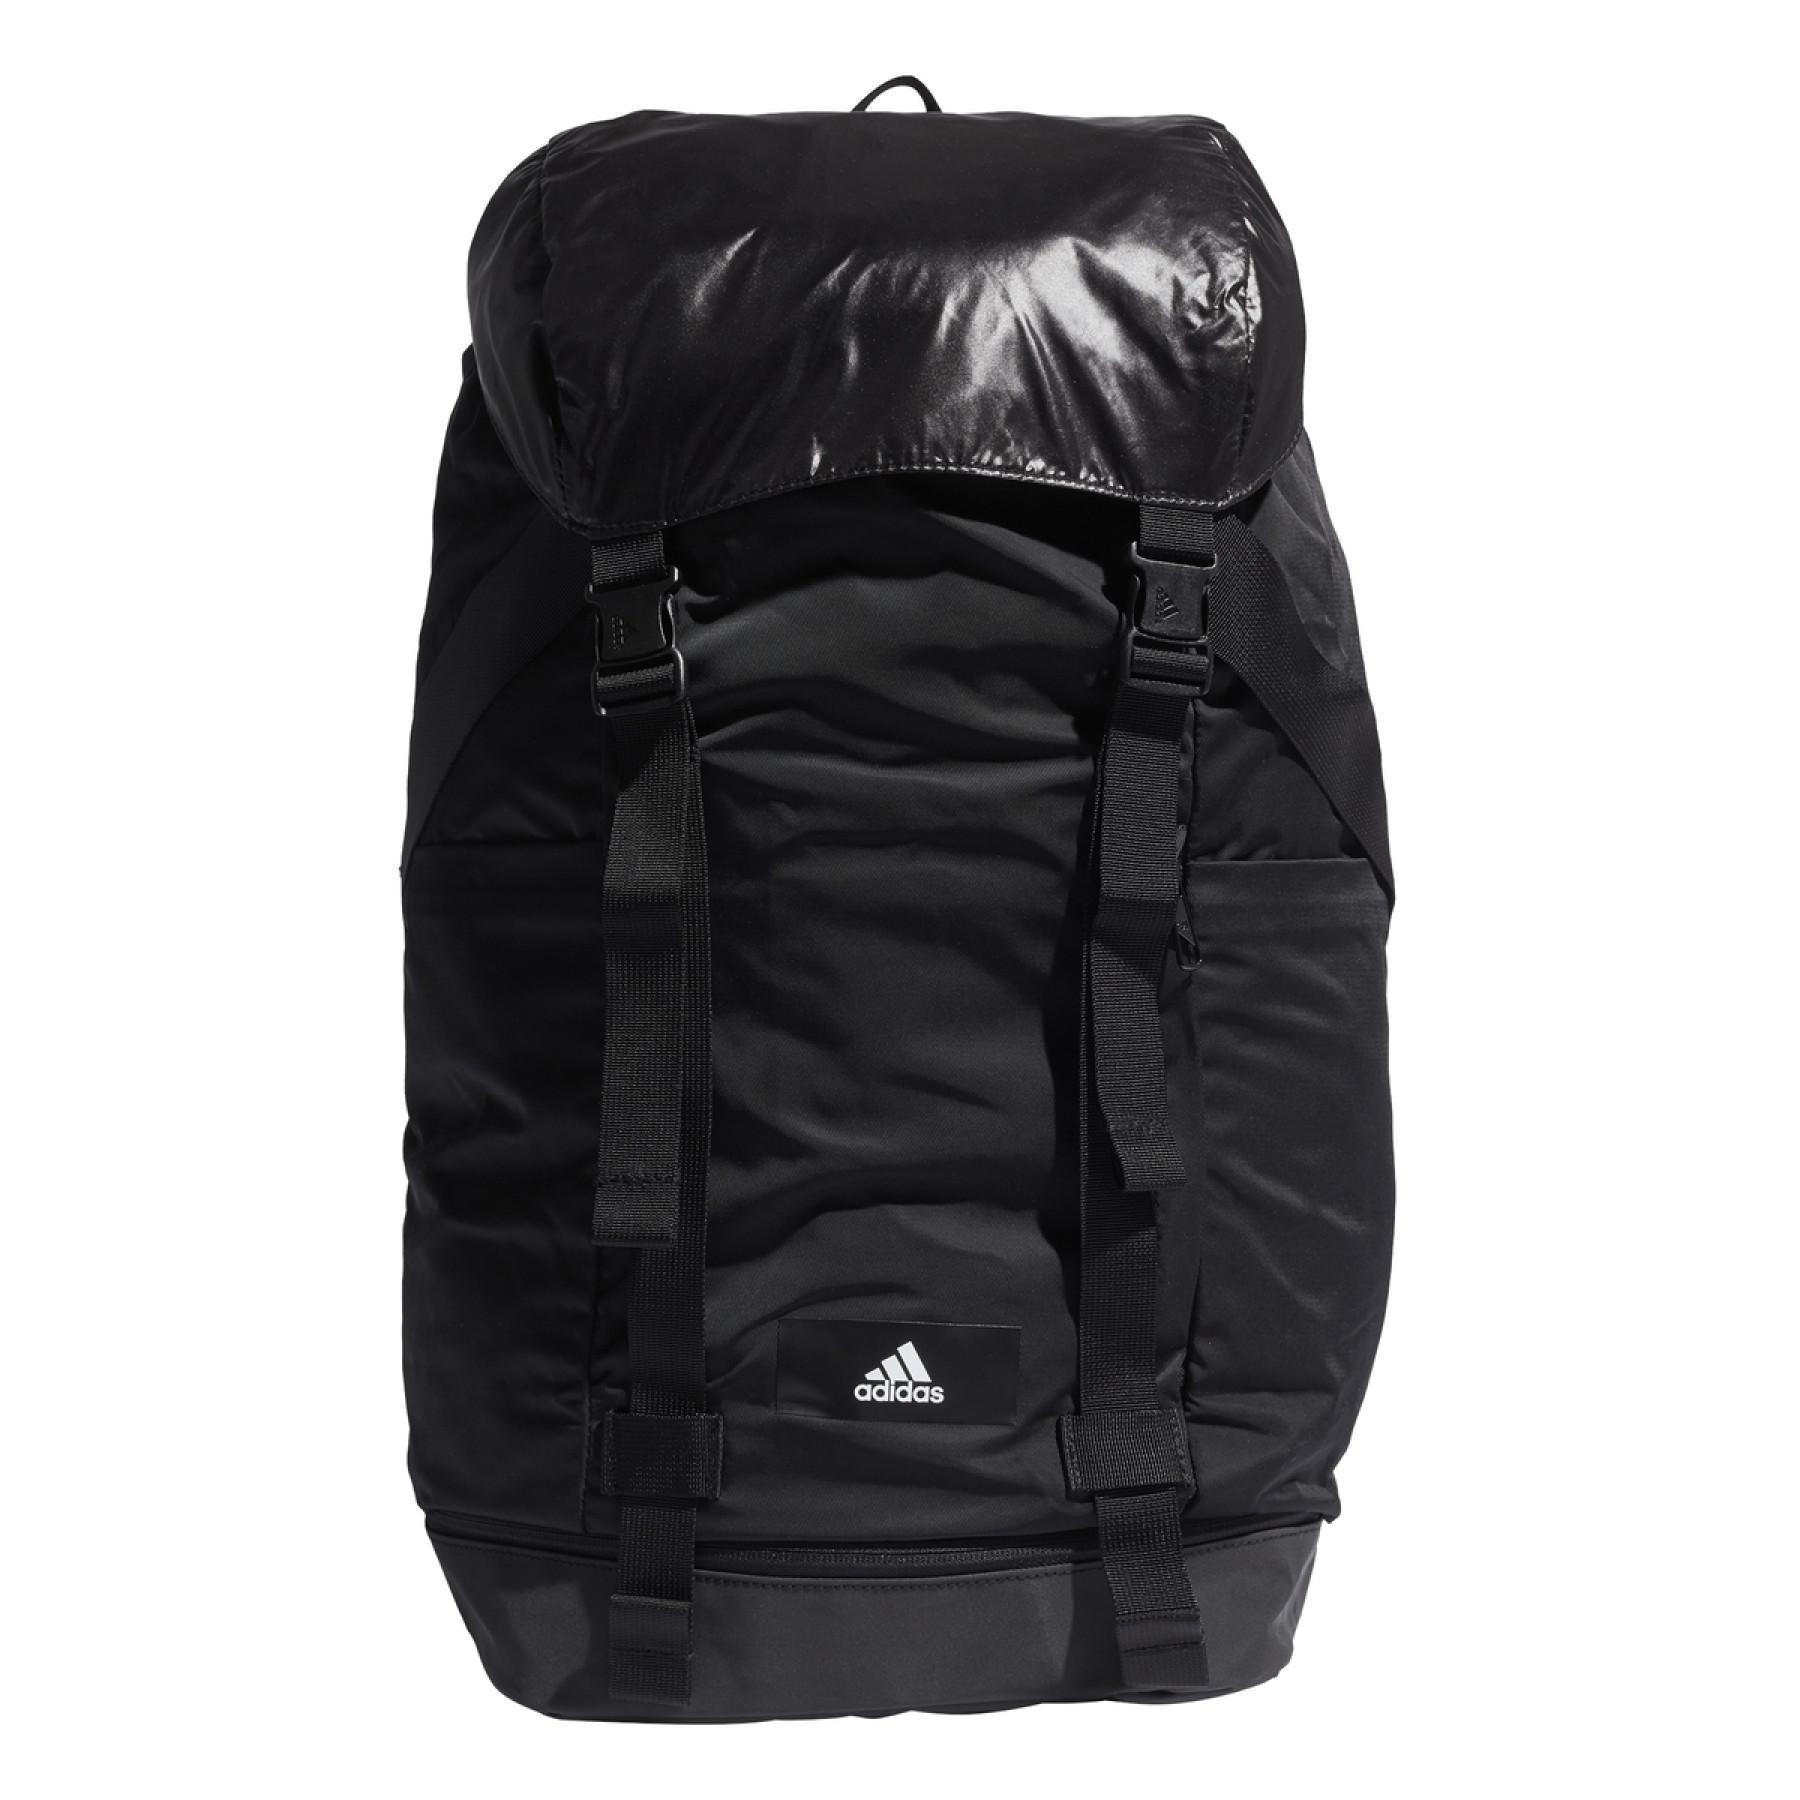 Women's backpack adidas Sports Functional